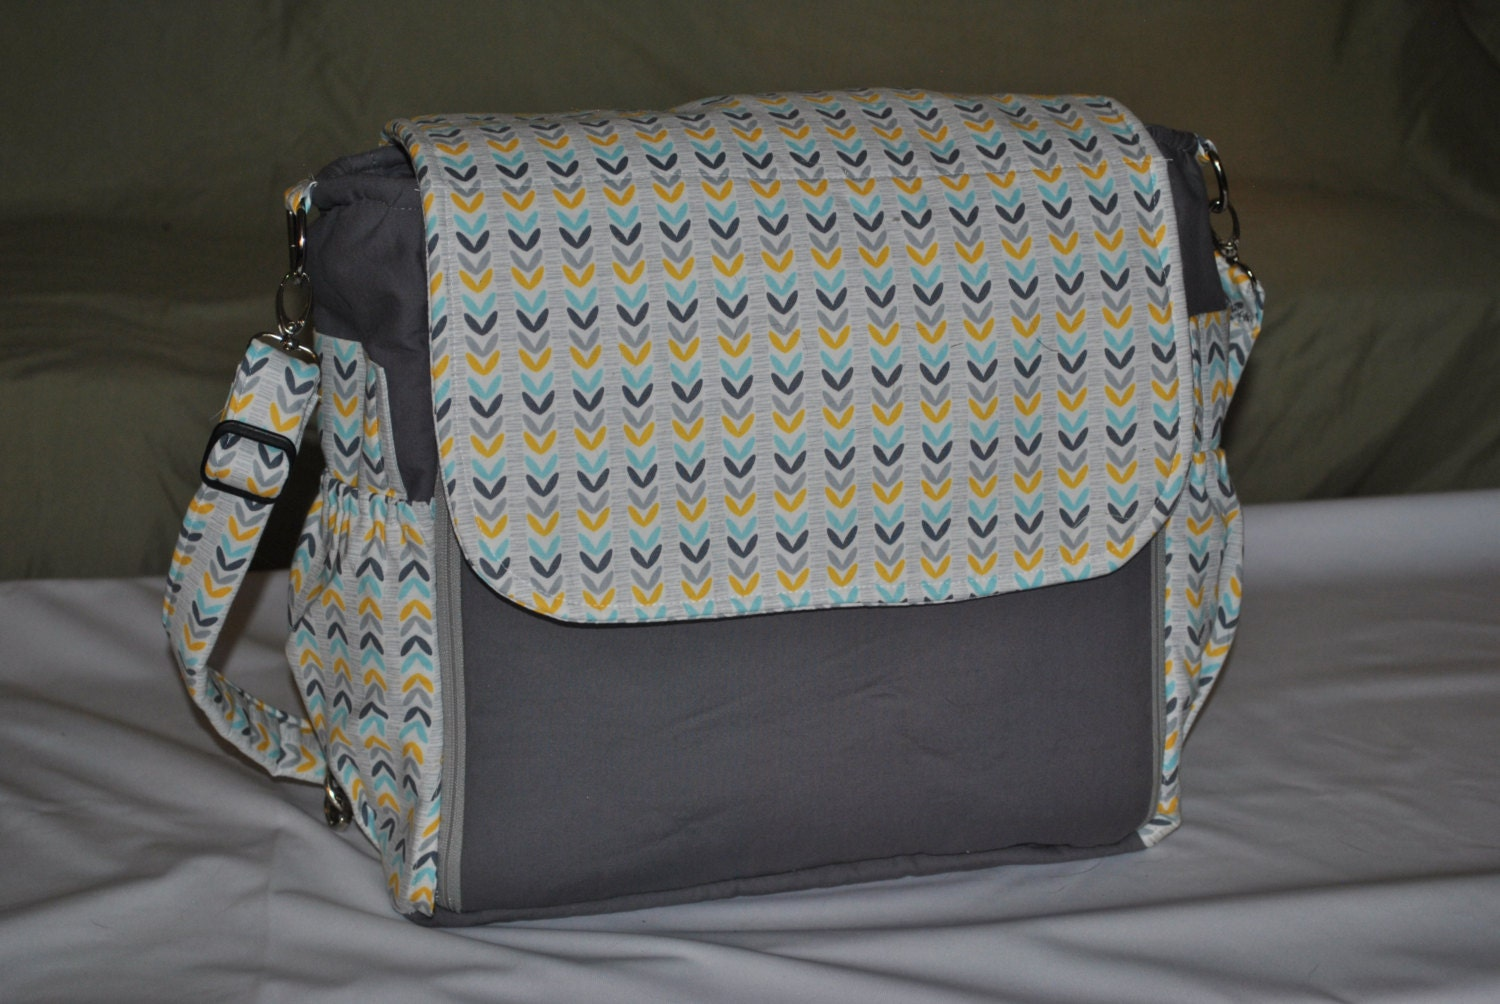 diaper bag messenger style. Black Bedroom Furniture Sets. Home Design Ideas